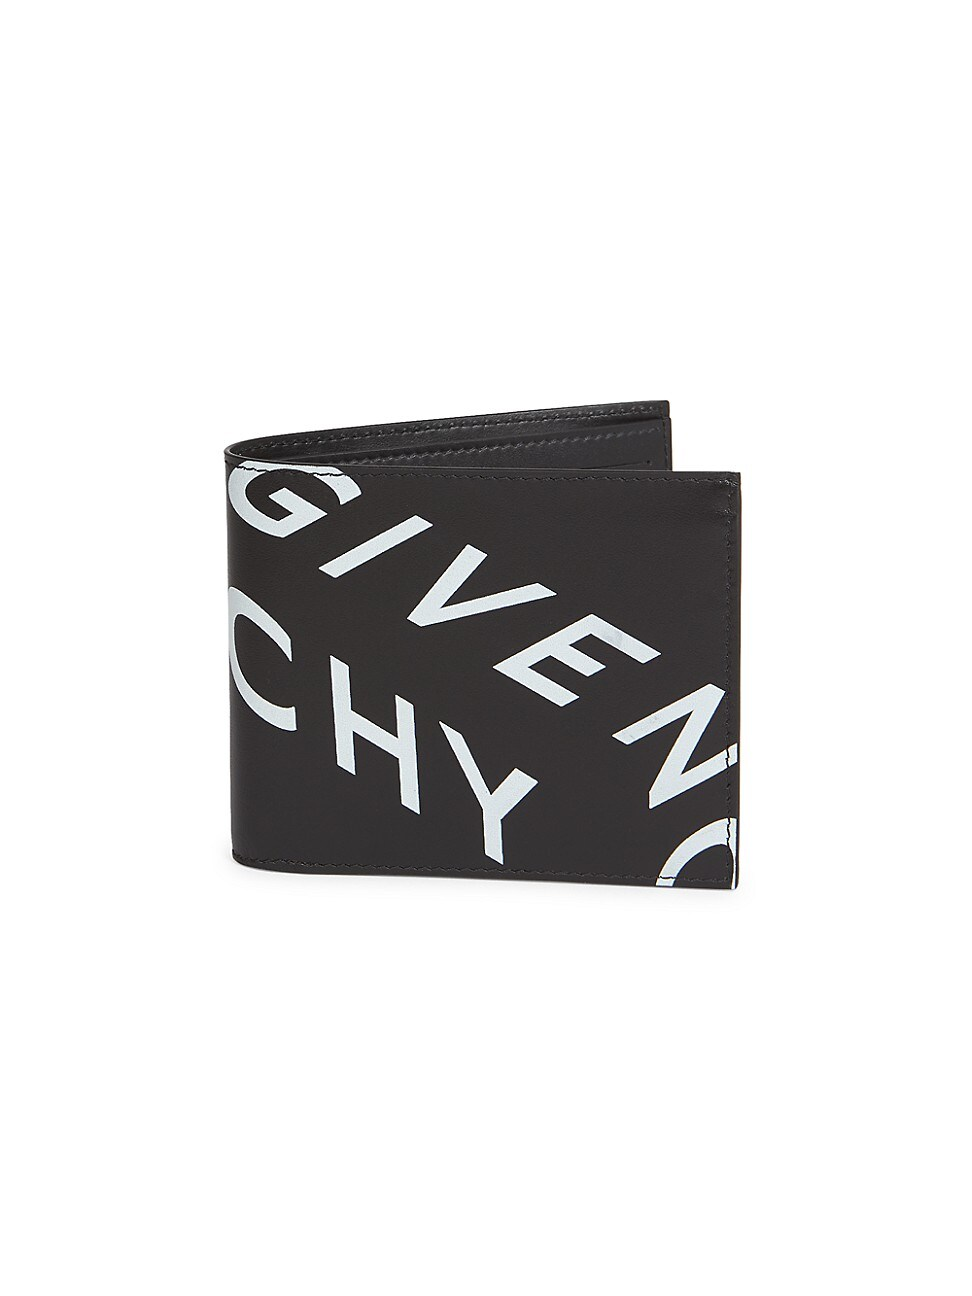 Givenchy Men's Logo Billfold Wallet In Black White